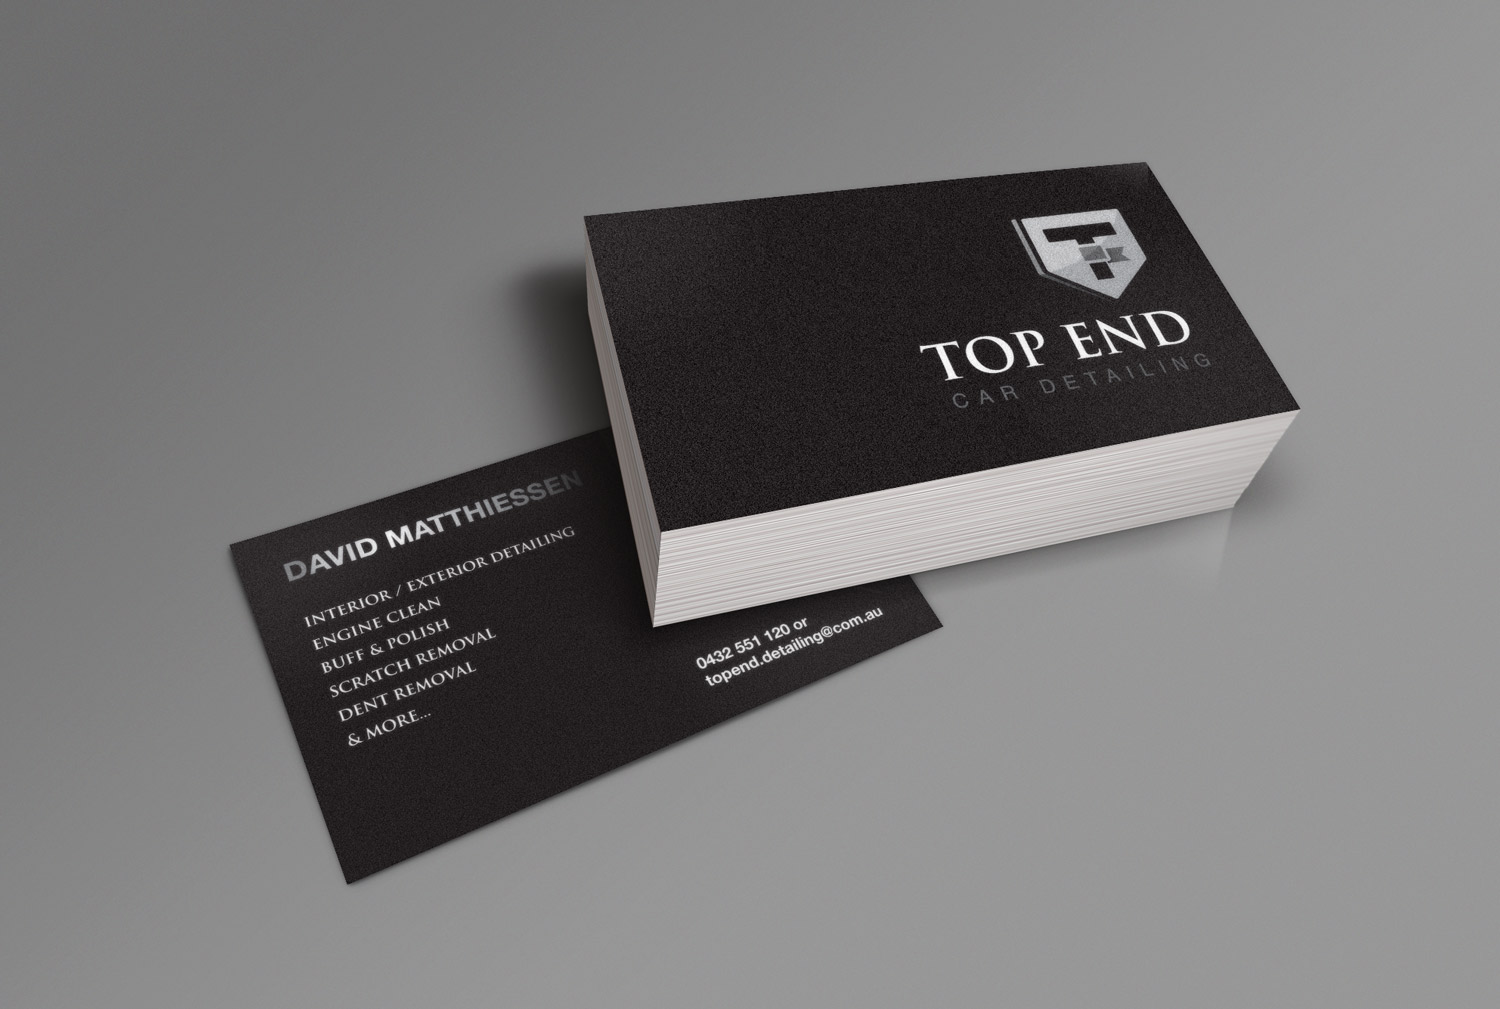 Totem-Creative-Design-&-Branding_Top-End-car-detailing-Business-Card.jpg